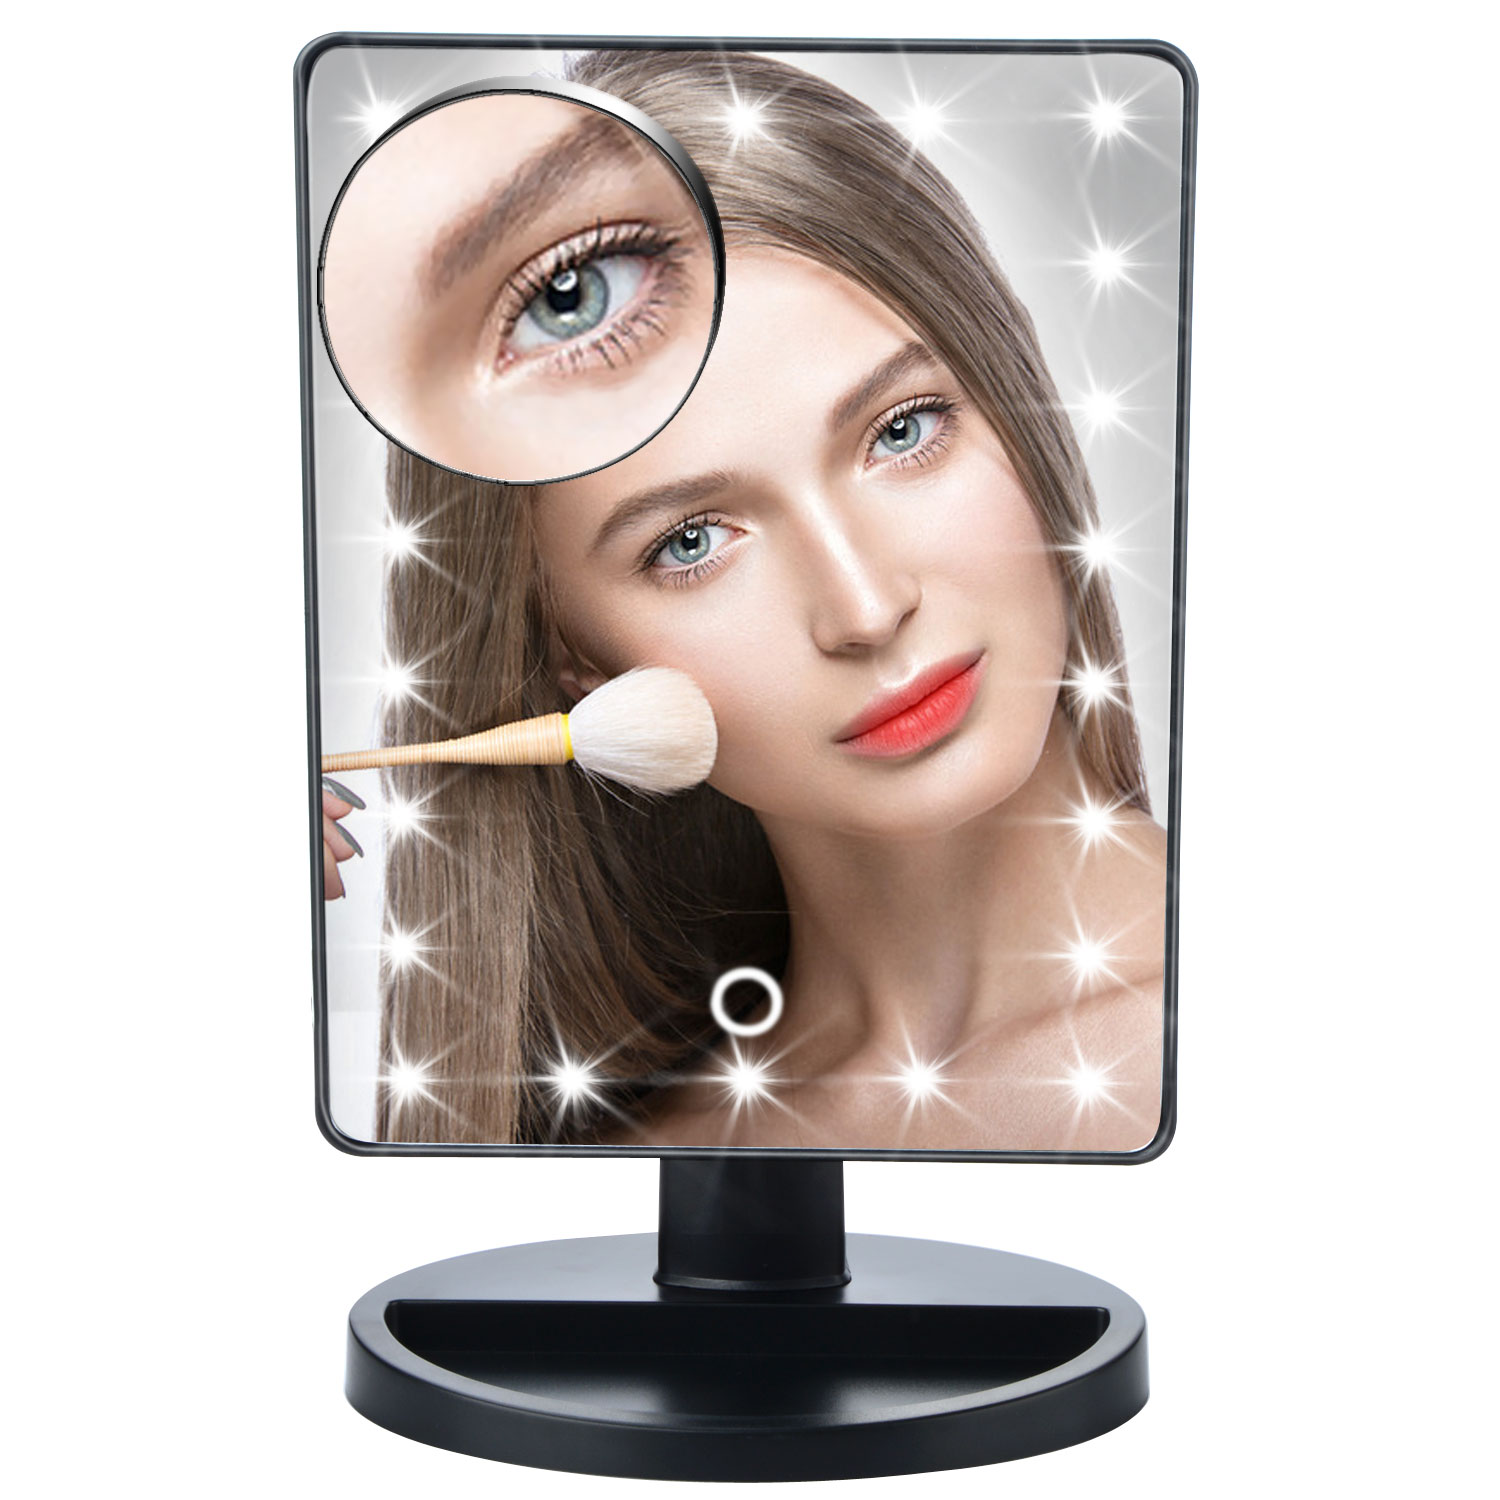 Touch Screen Makeup Mirror Vanity Mirror With 22 LED Lights 10X Magnifying Mirror With Suction Cups 180 Degree Rotation T38 декор lord vanity quinta mirabilia grigio 20x56